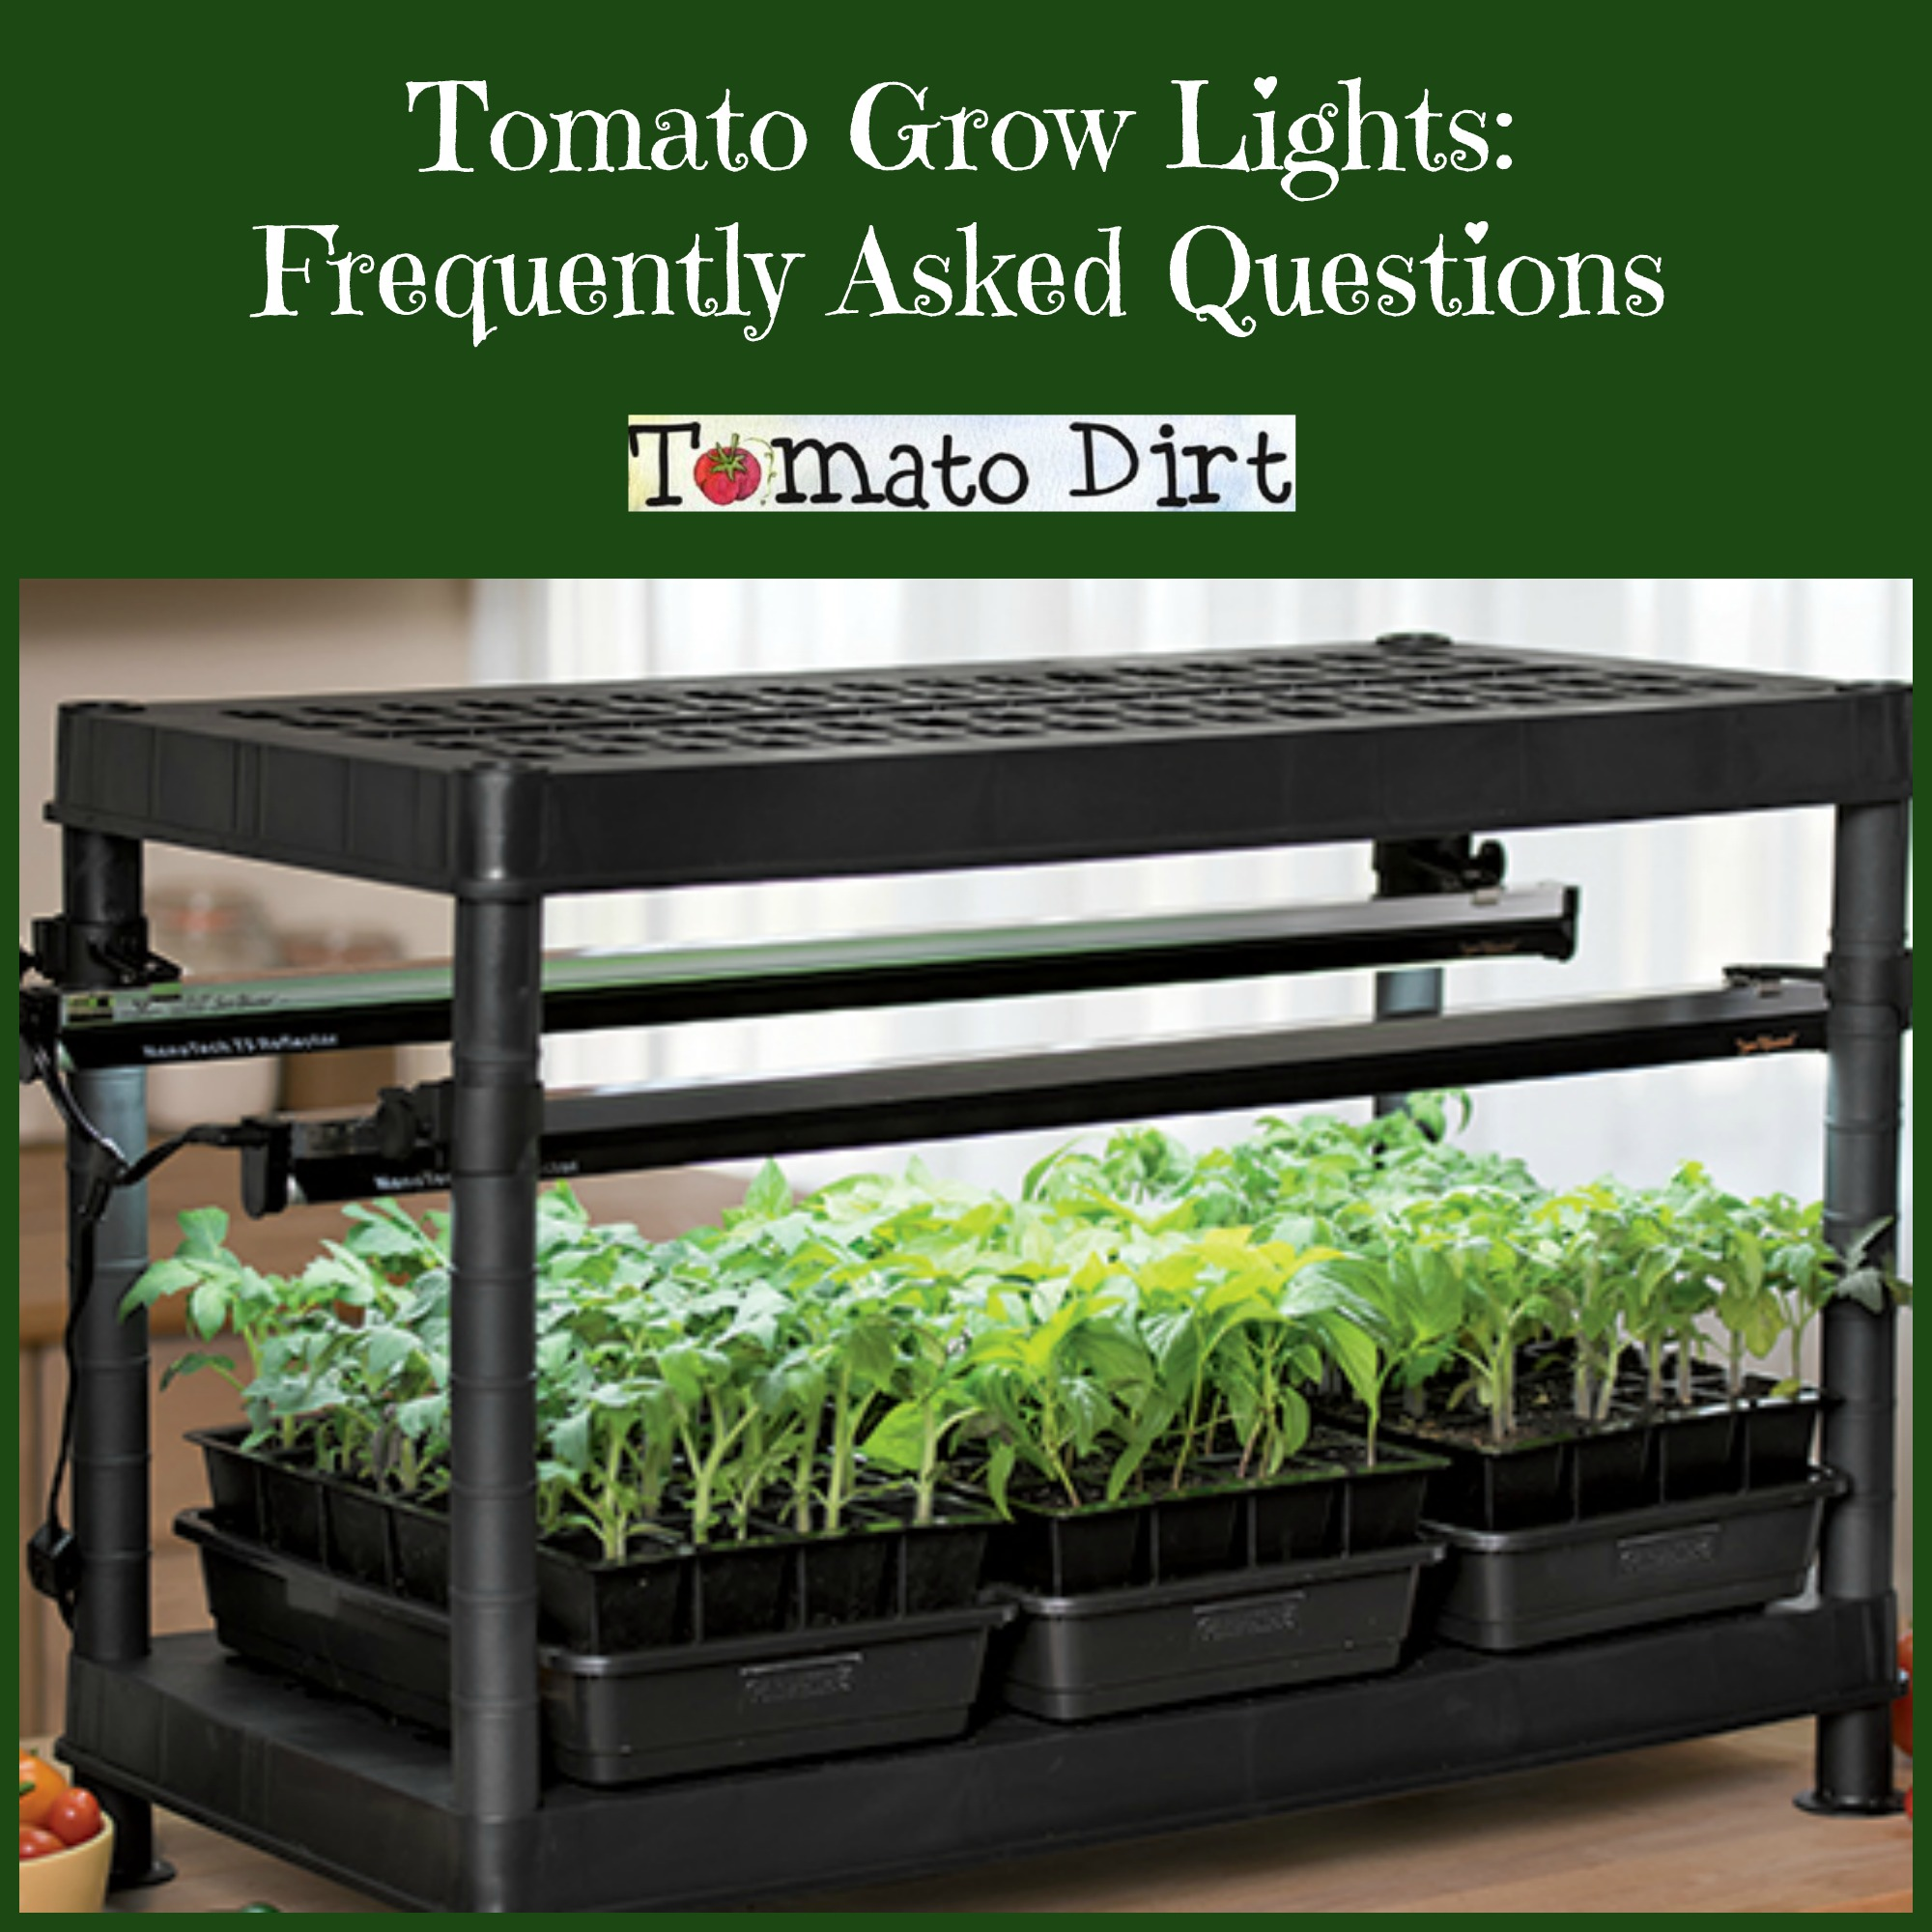 Tomato Grow Lights for Seedlings: FAQs from Tomato Dirt